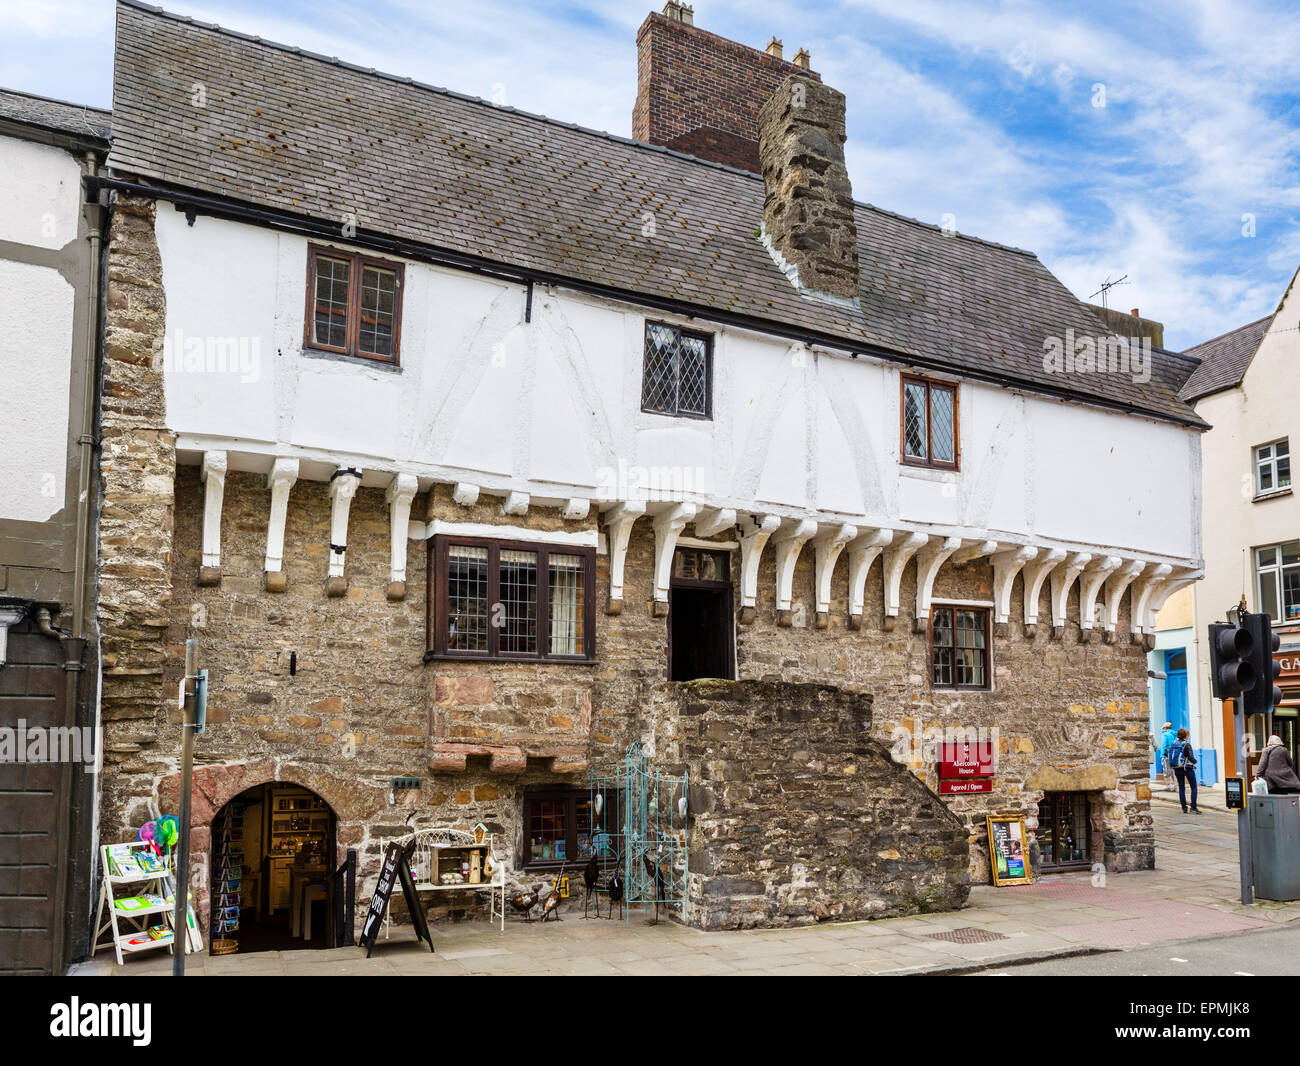 Aberconwy House, an historic 14thC merchant's house, Castle Street, Conwy, North Wales, UK - Stock Image